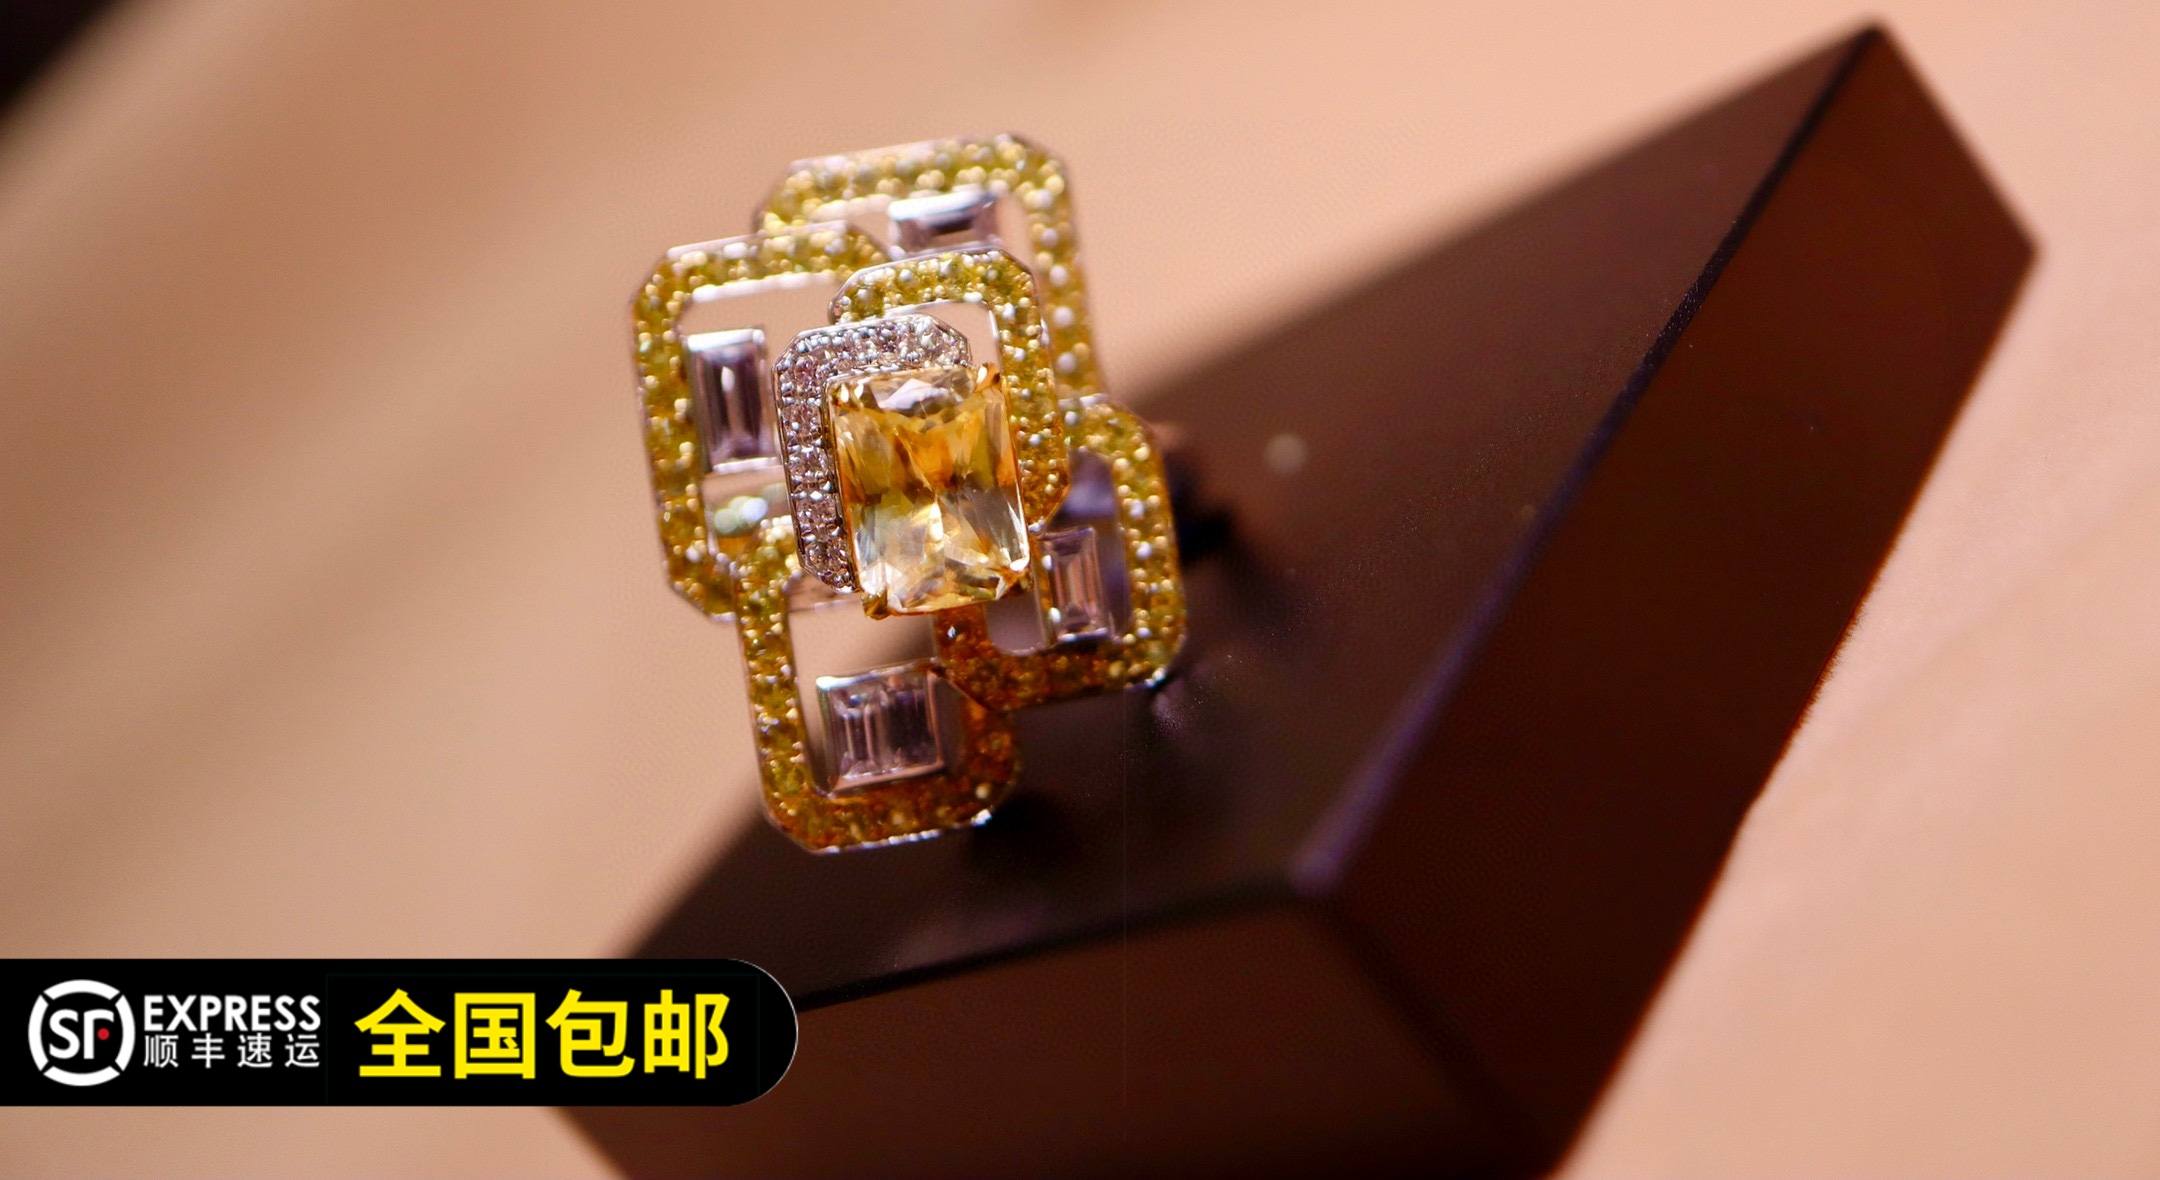 Original works shop warranty natural unburned Yellow Sapphire Ring 18K Gold Diamond shopkeeper recommended package